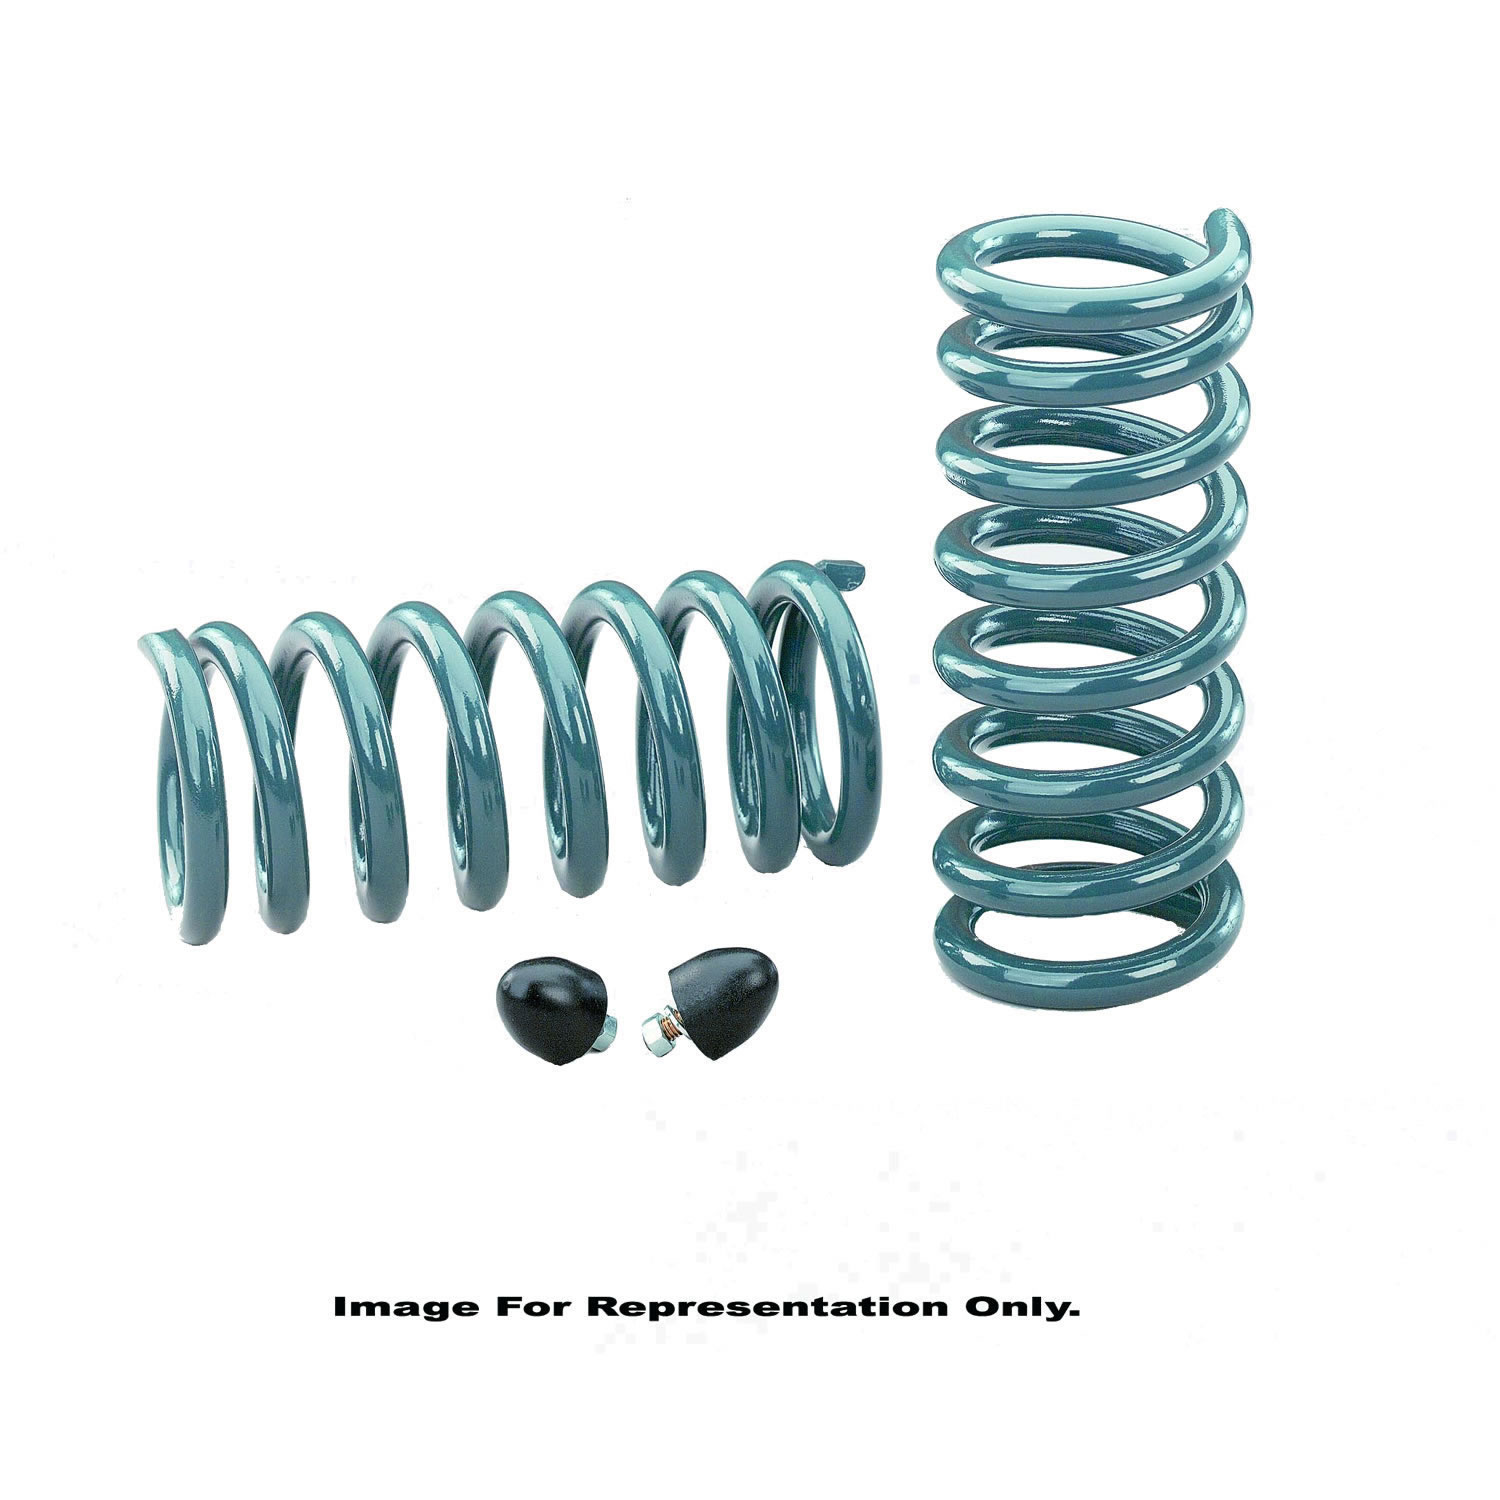 1982-1992 GM F-Body Sport Coil Springs from Hotchkis Sport Suspension